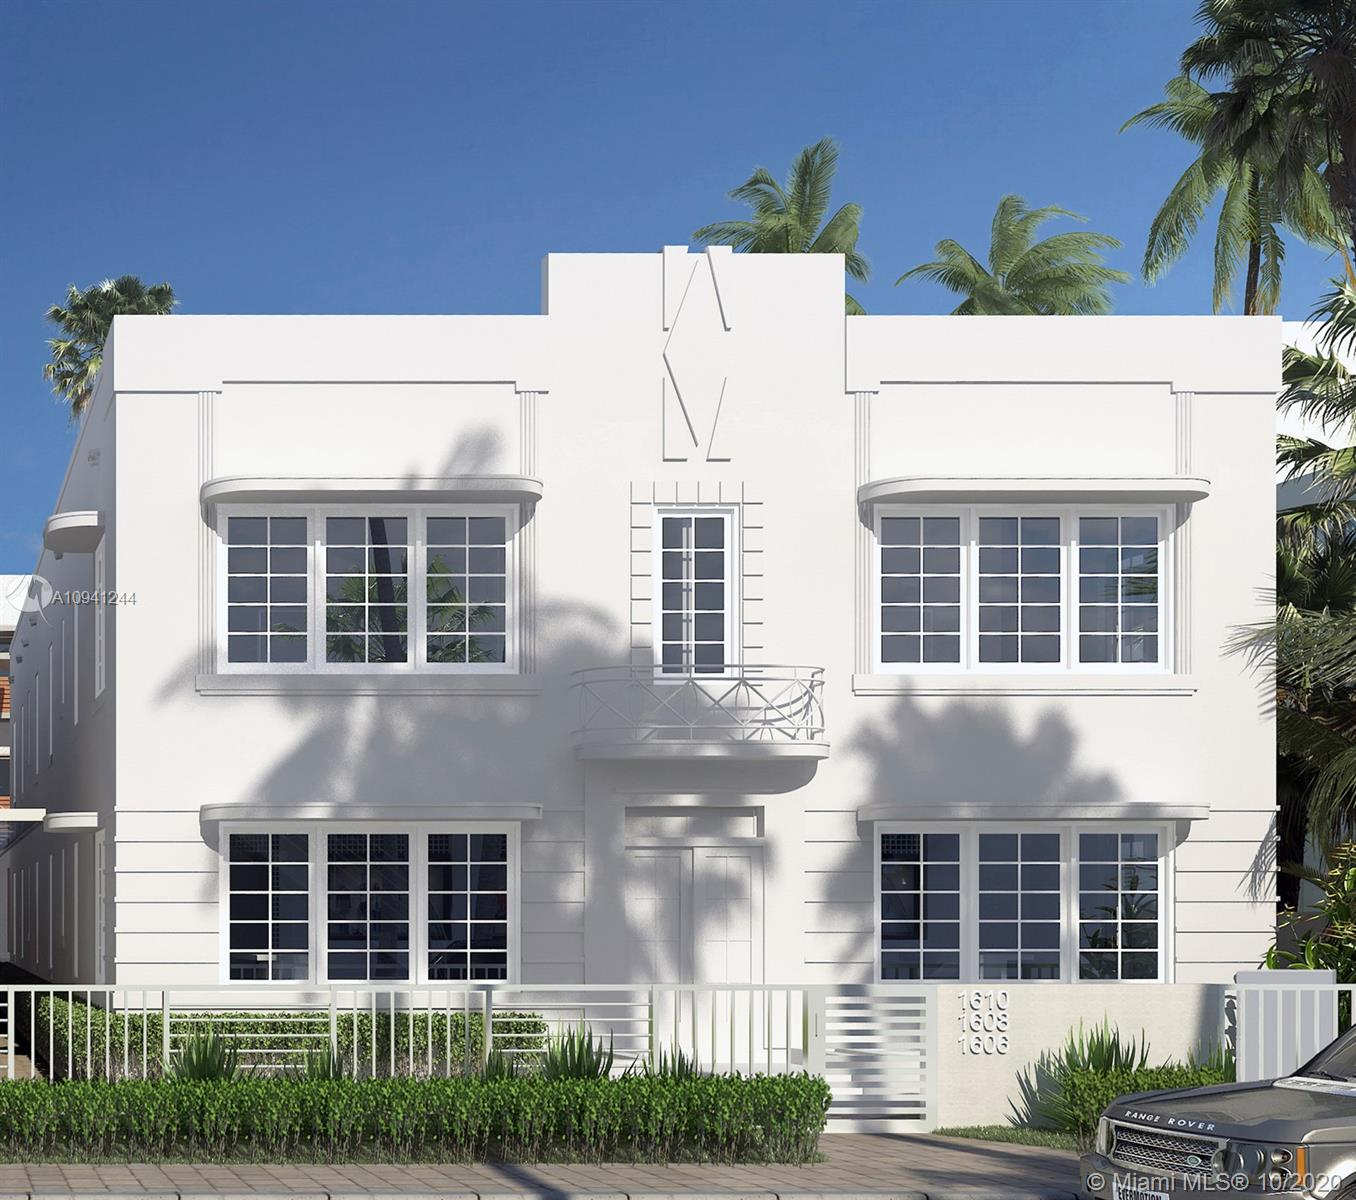 Unique new 2 story contemporary Townhome in completely renovated Art Deco building located in the heart of Miami Beach steps from Lincoln Road and Beaches. State of the art finishes throughout with modern Kitchen, stainless steel appliances, engineered wood floors, porcelain tiles and upscale bathroom fixtures, new A/C with heater system, impact glass windows, washer/dryer, instant energy-efficient water heater, pre-wired for cable and data. Low maintenance fee of $272 without reserve, $308 with reserve. Reserve covers: Roof, Painting, Pavement. Pre-Construction prices for a limited time only.  Delivery Summer 2021. Part of a fabulous 22-unit new construction boutique project.  ***SHOWINGS WILL START 5.1.2021 DUE TO ONGOING CONSTRUCTION***